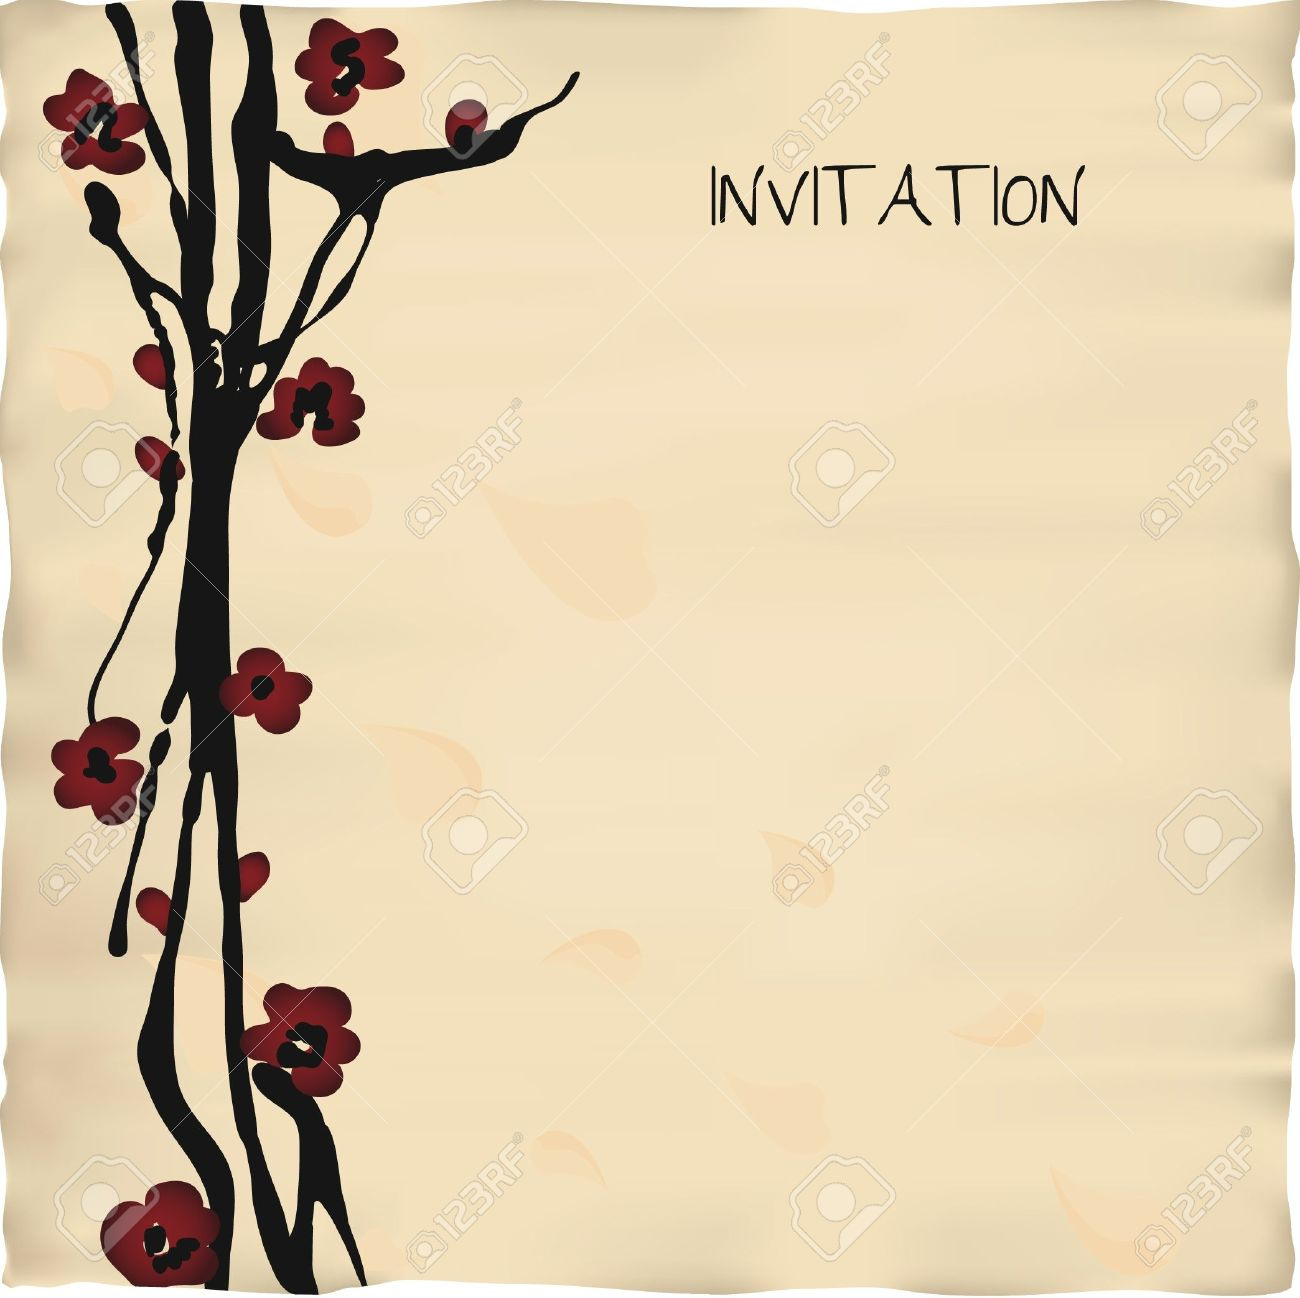 Awesome Japanese Or Chinese Style Invitation Card Template Stock Vector   20633439